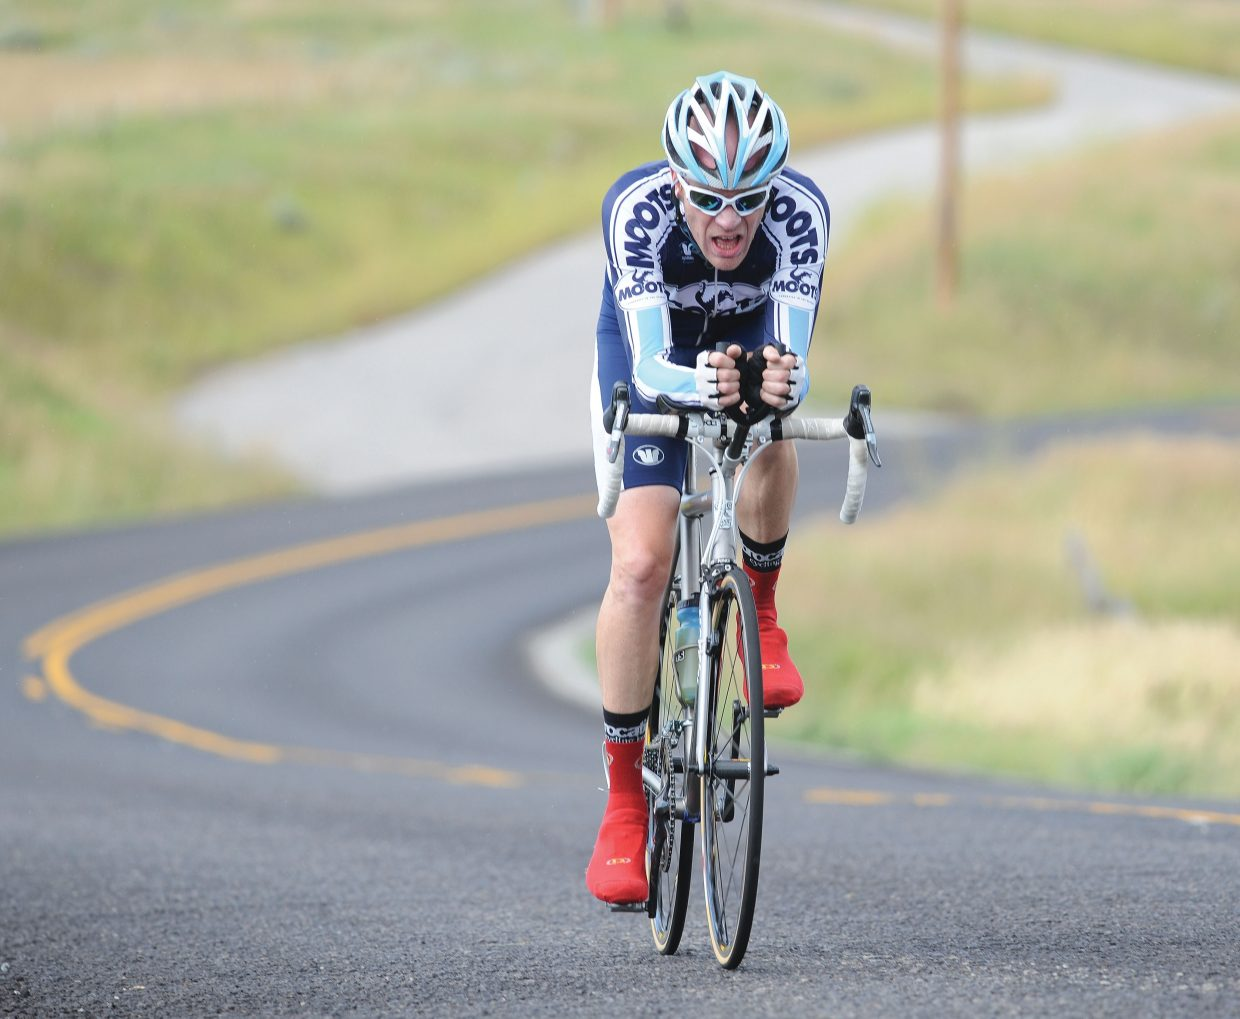 Steamboat Springs cyclist Jon Cariveau races along Routt County Road 14 on Friday afternoon during the time trial of the Steamboat Springs Stage Race.